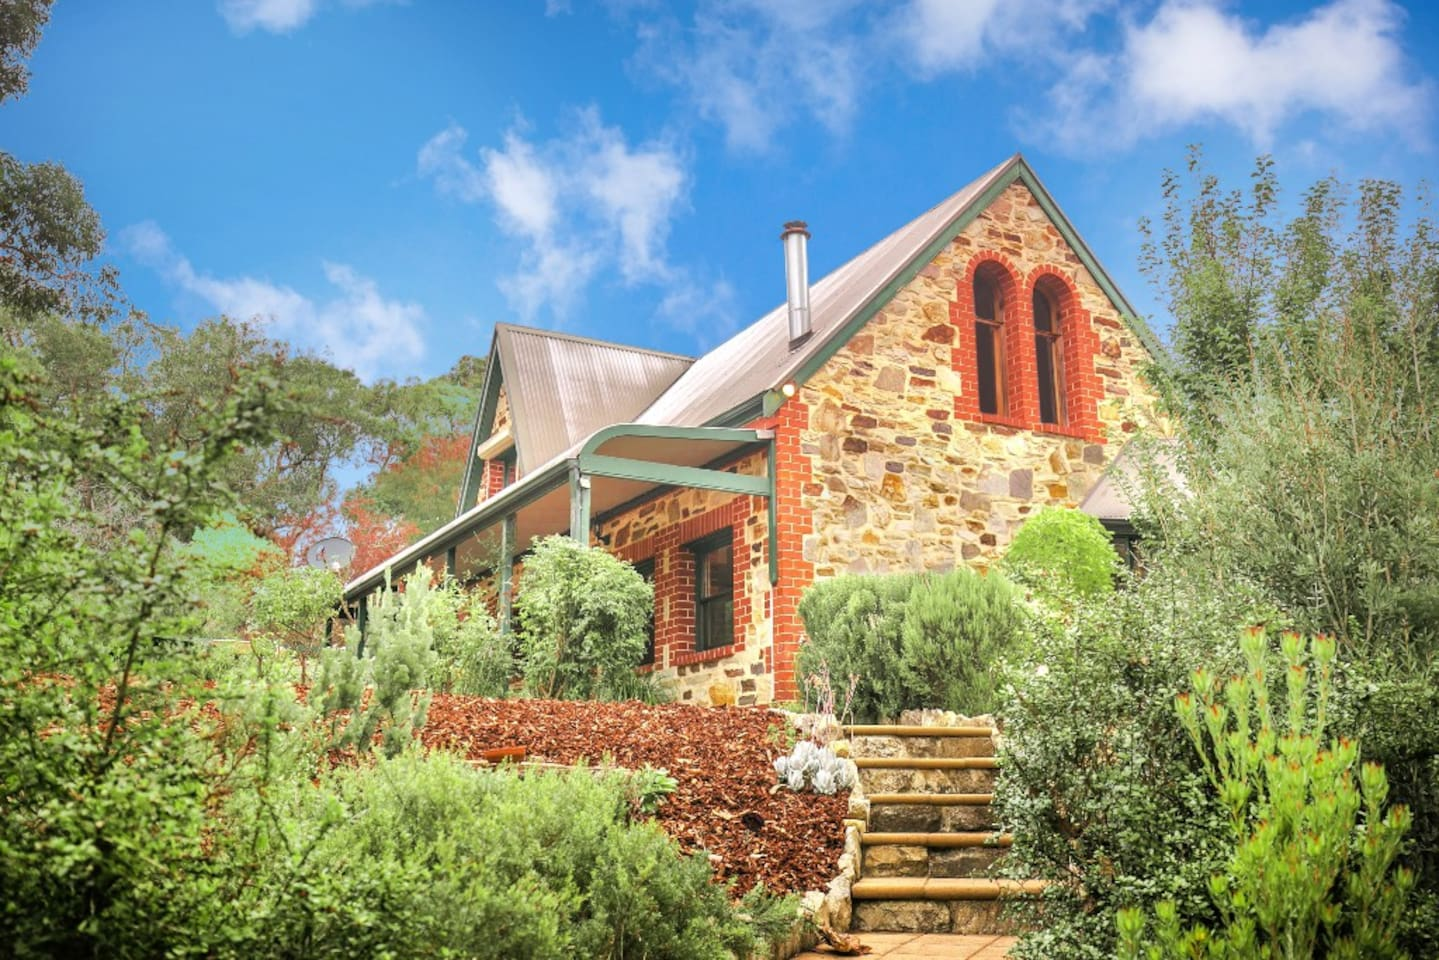 Chapel Cottage is full of character and charm